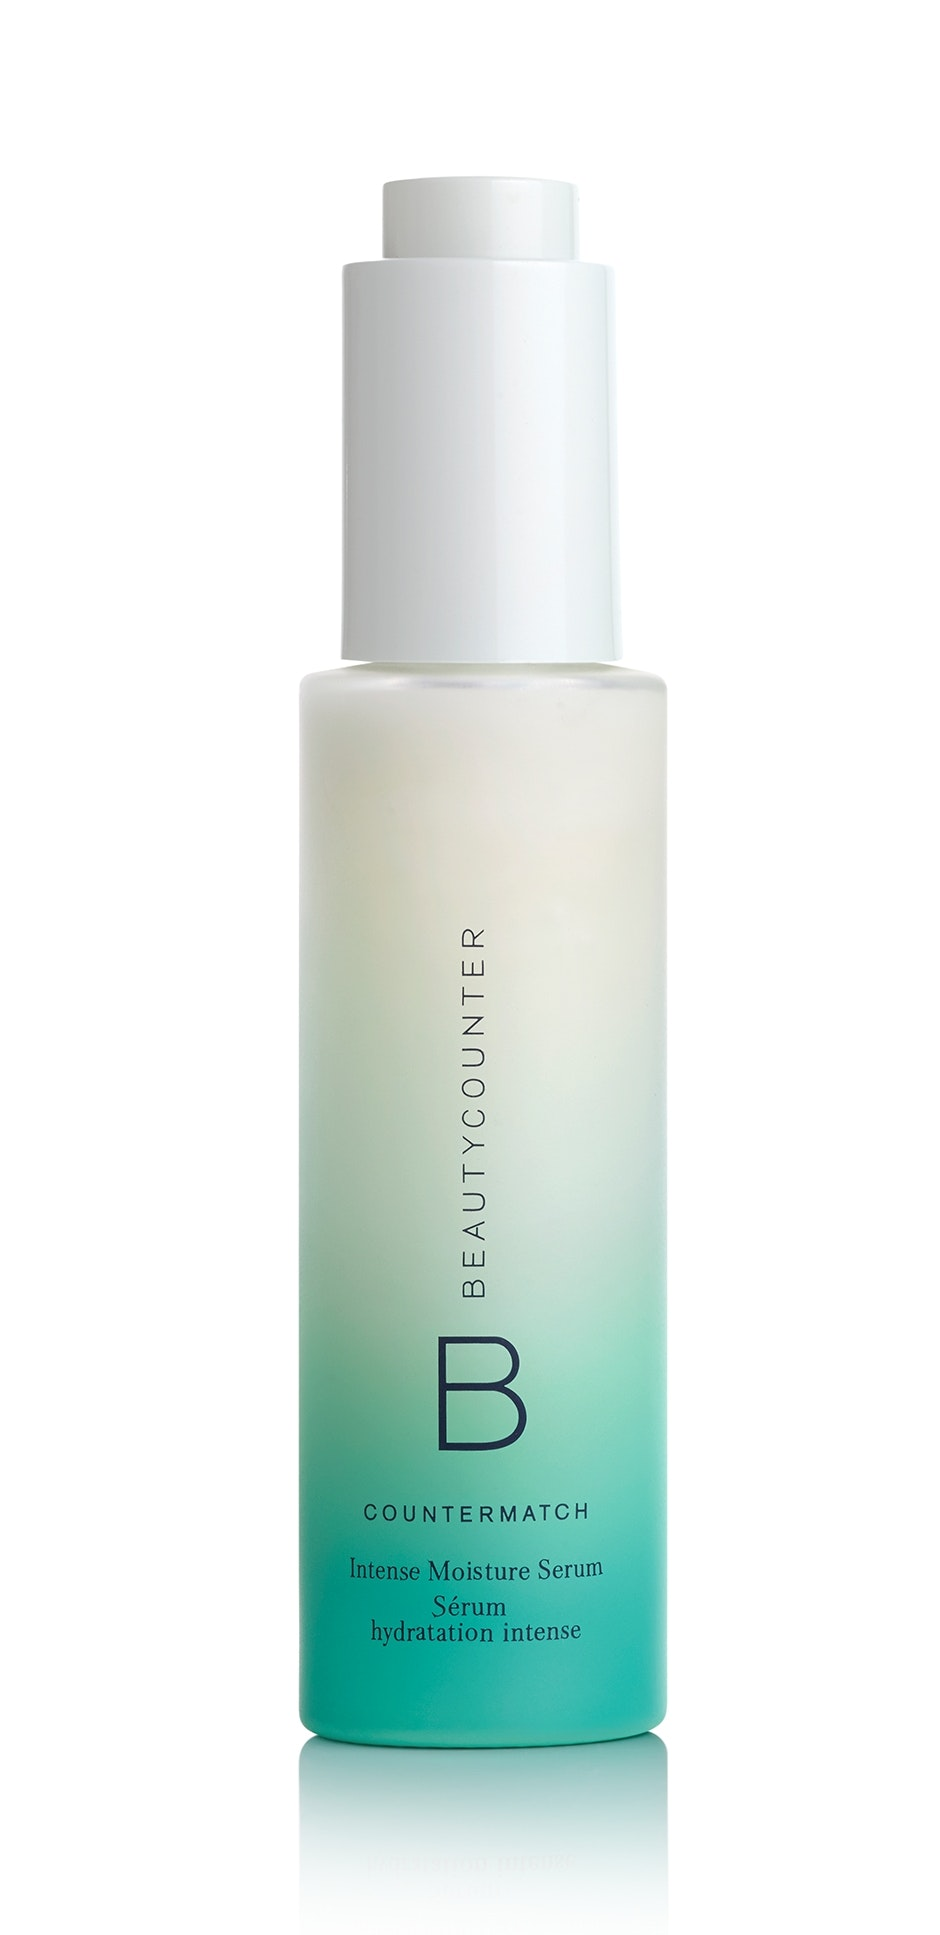 Countermatch Intense Moisture Serum